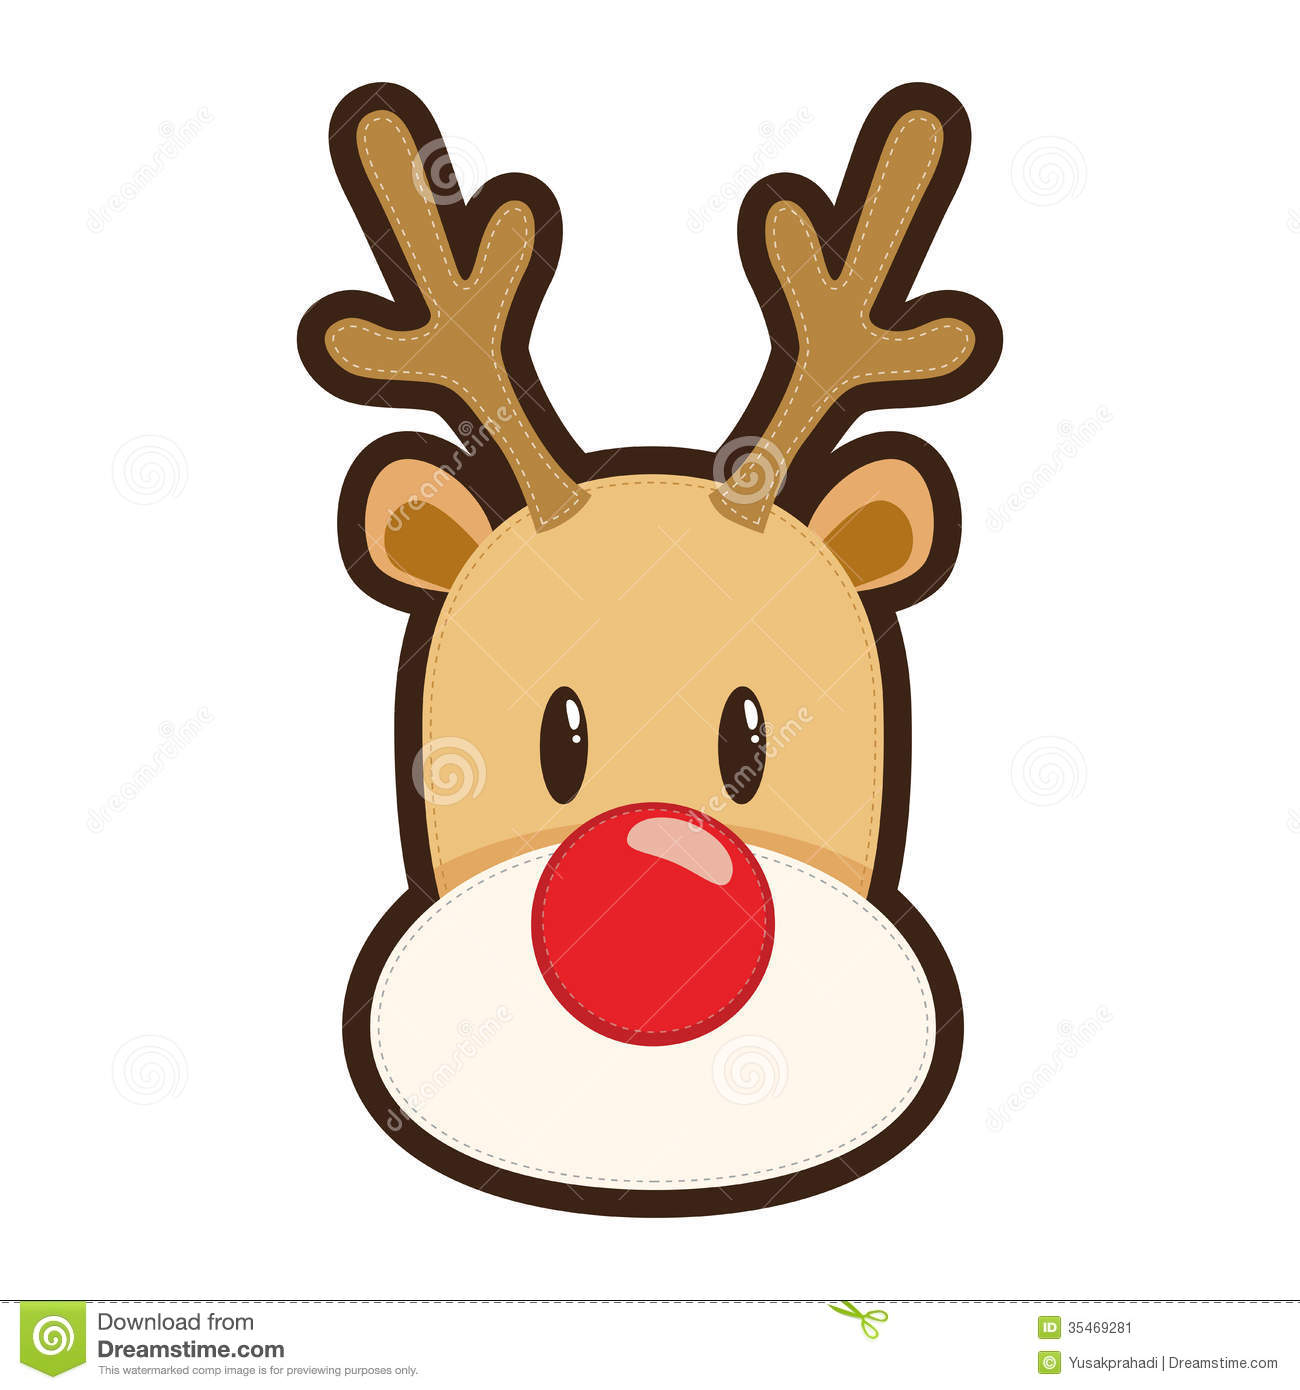 clipartlook. Antlers clipart rudolph the red nosed reindeer